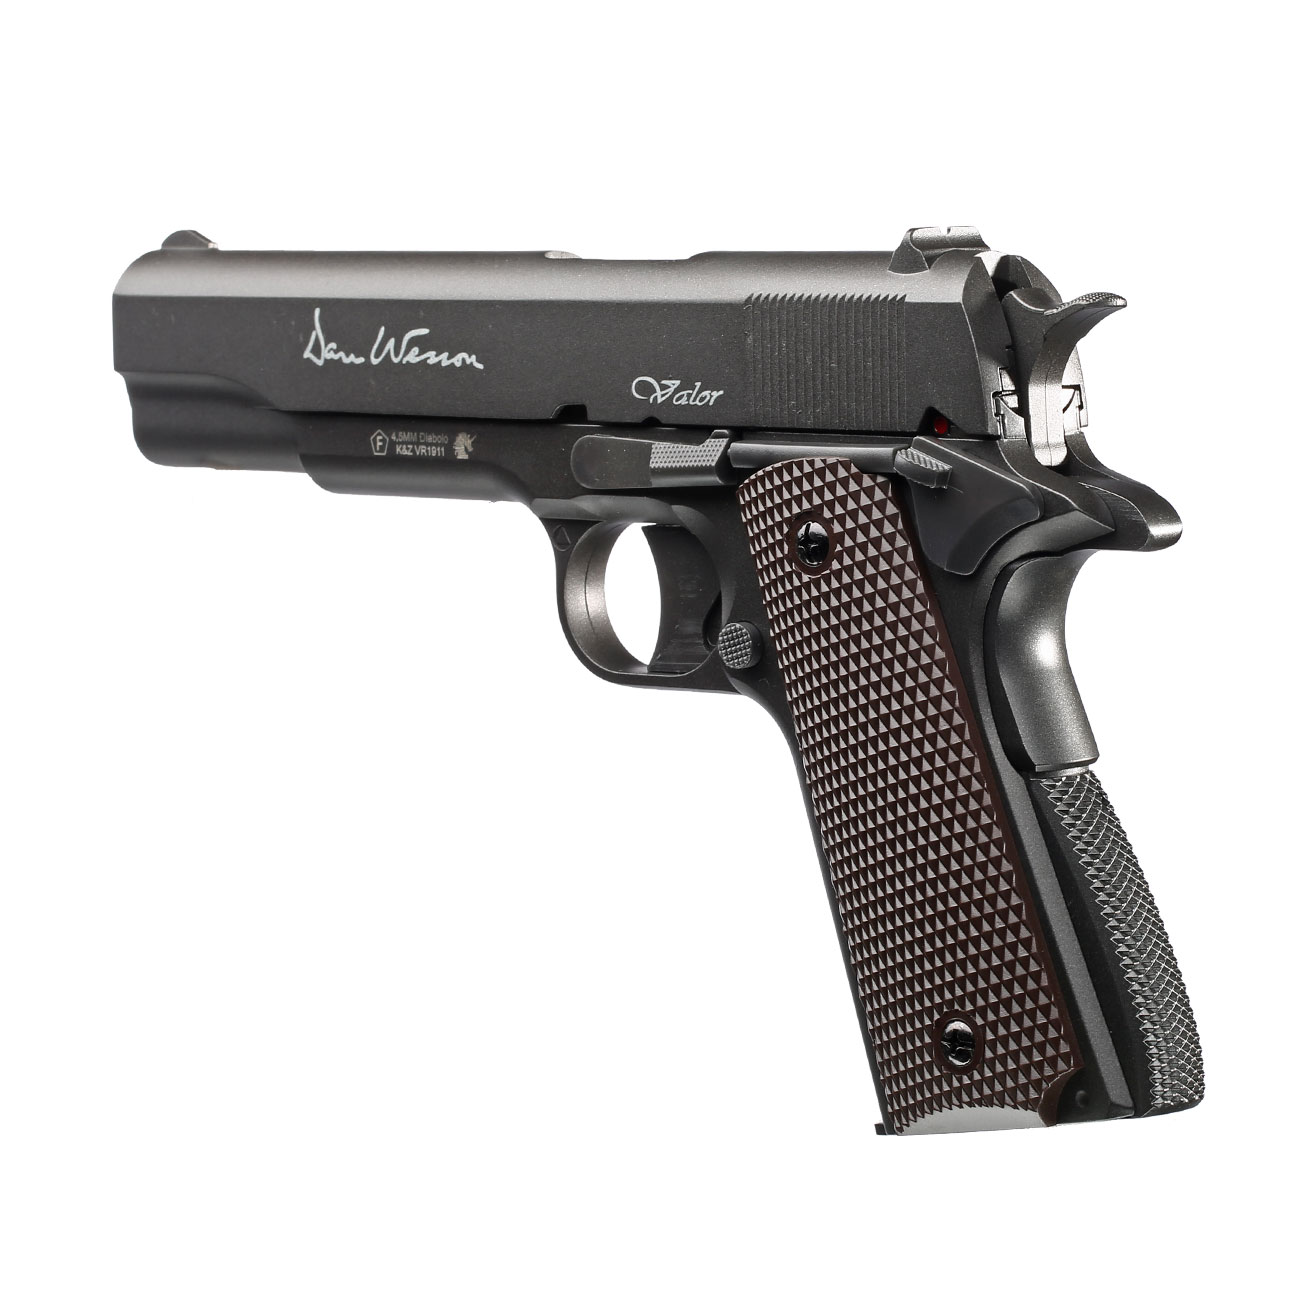 Dan Wesson Valor 1911 CO2-Luftpistole Kal. 4,5mm Diabolo Non-Blowback 2